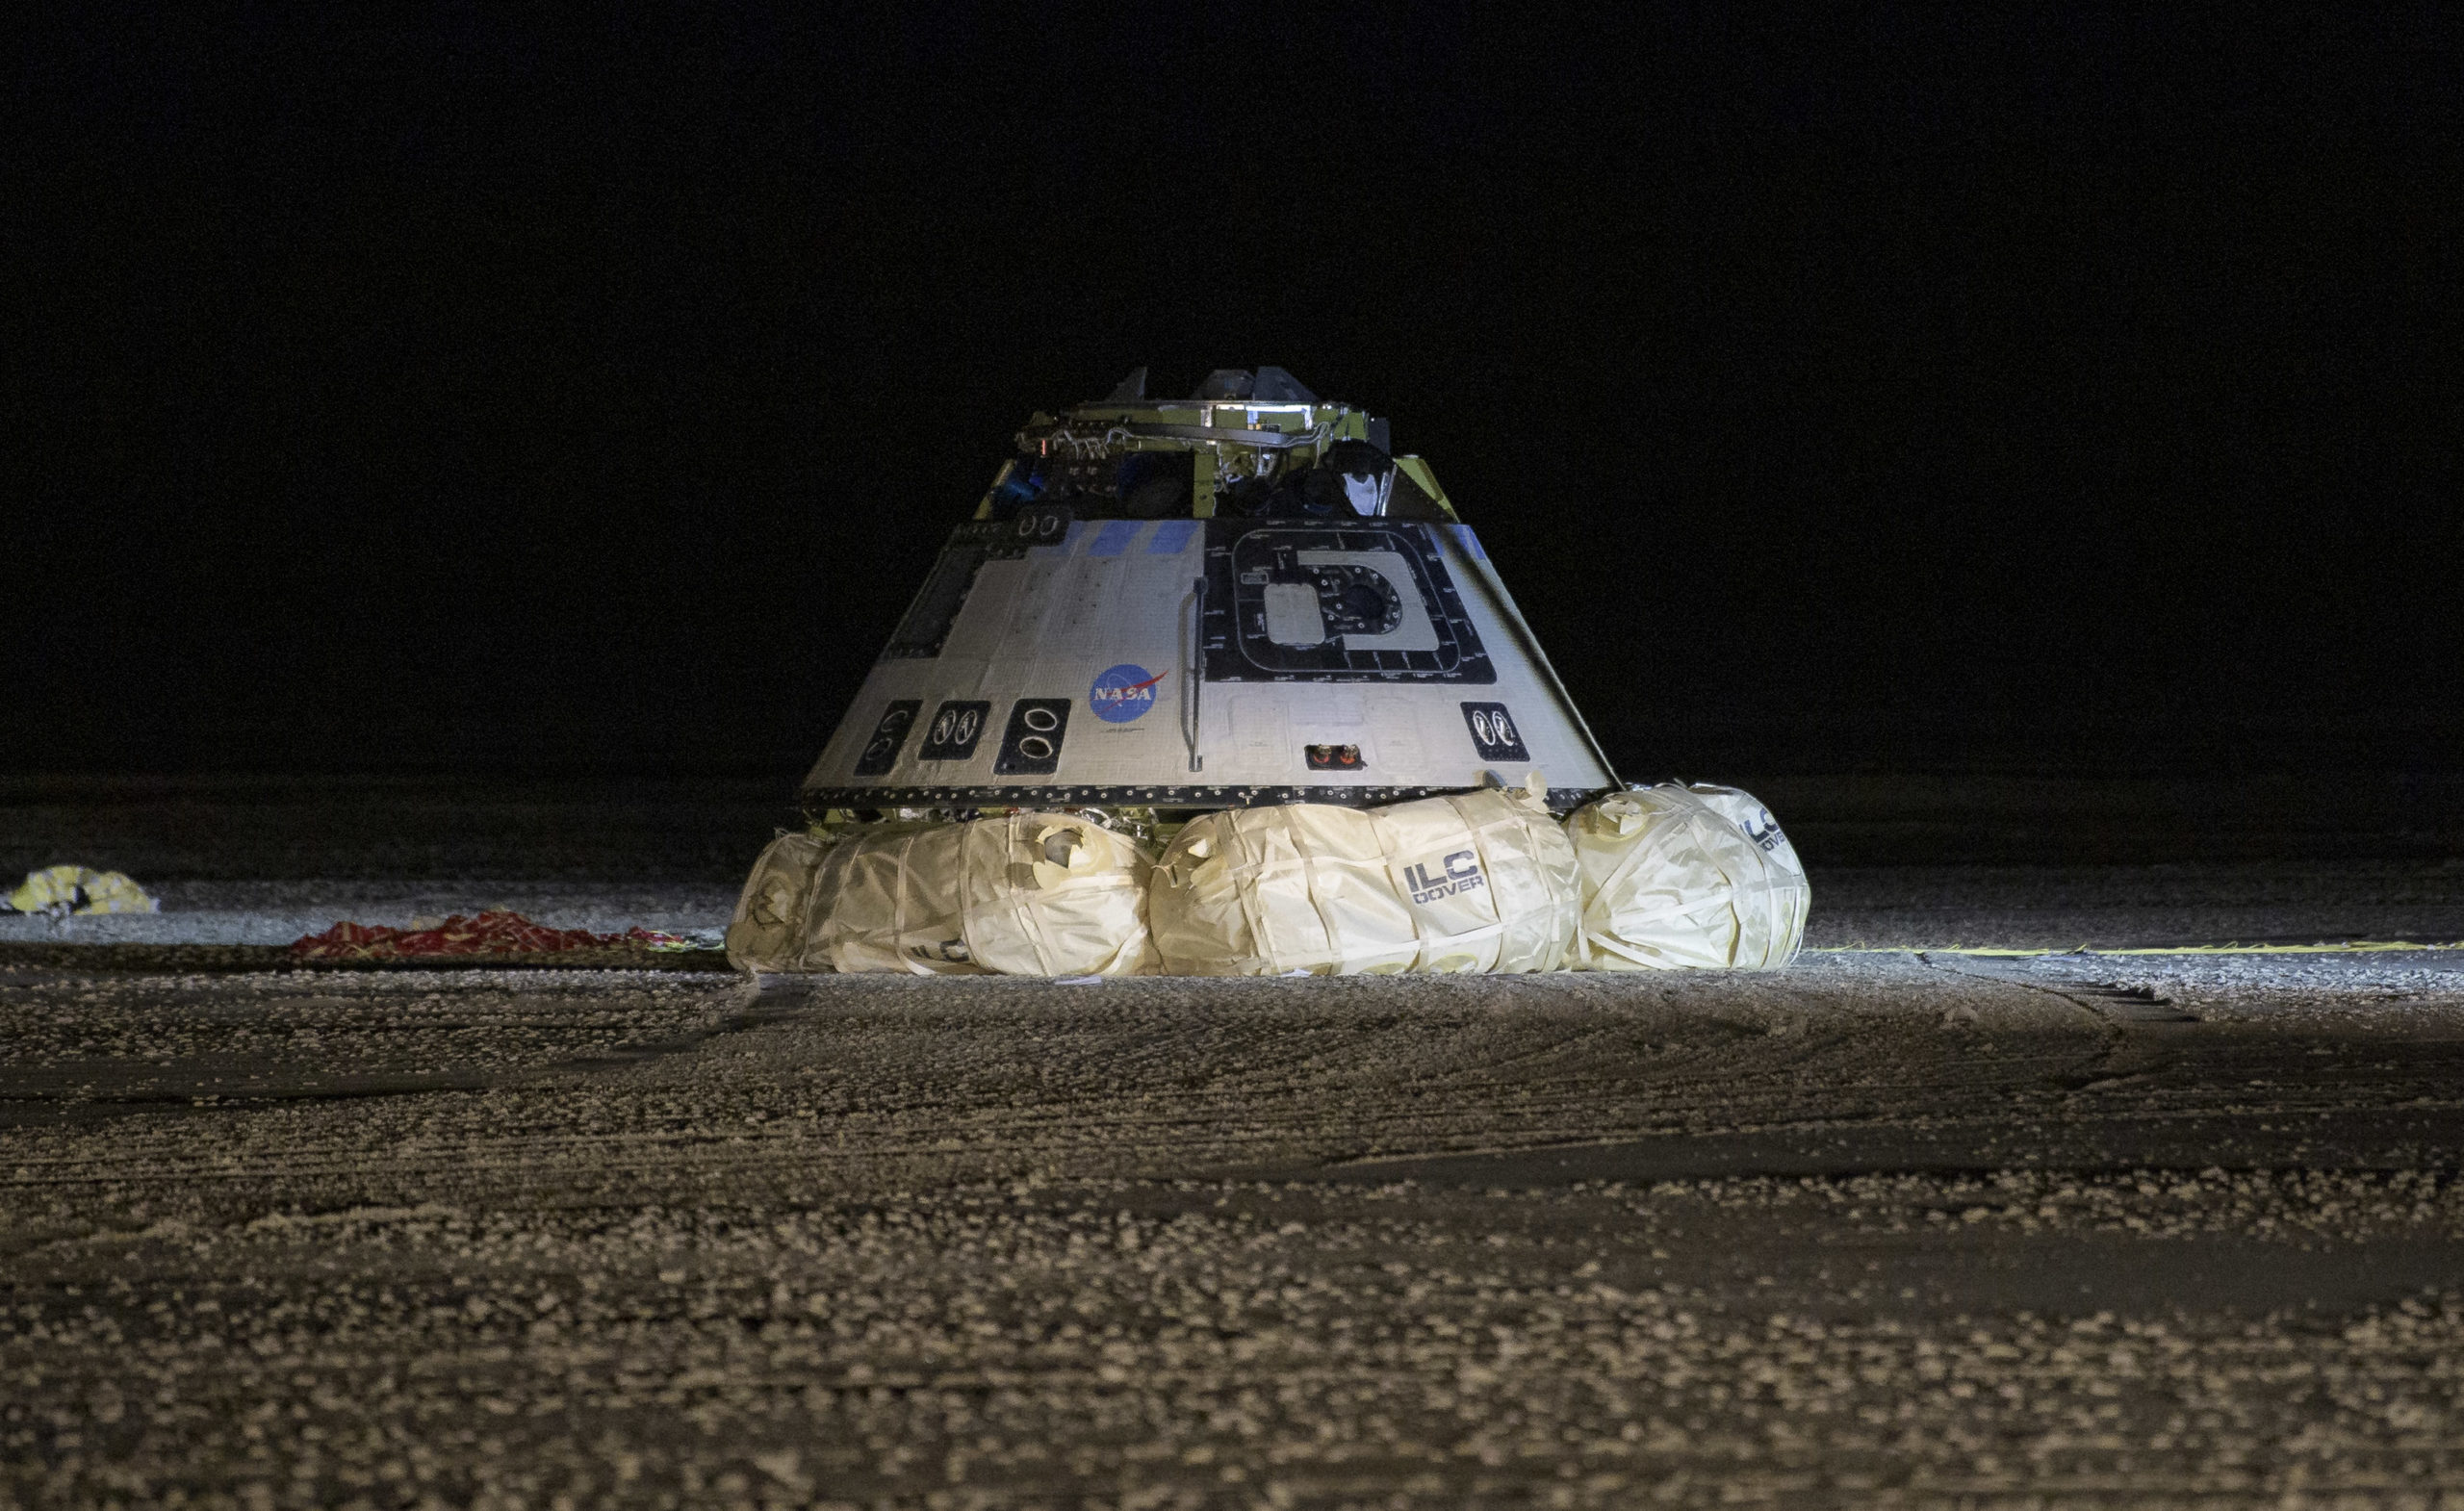 Starliner Lands Safely after Skipping ISS Visit